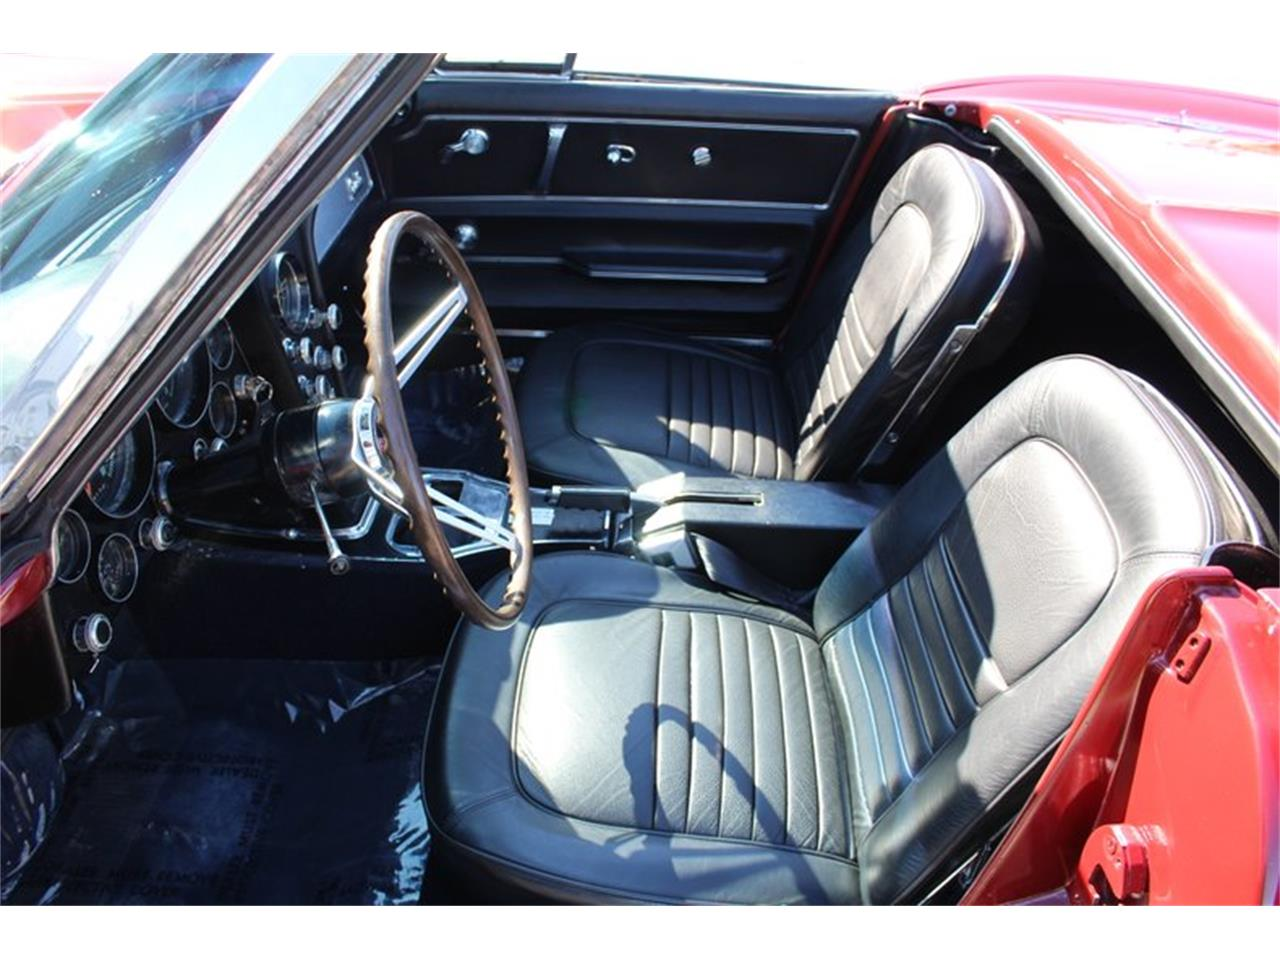 Large Picture of Classic '67 Chevrolet Corvette Stingray located in Florida - $54,900.00 Offered by Classic Cars of Sarasota - PVTL